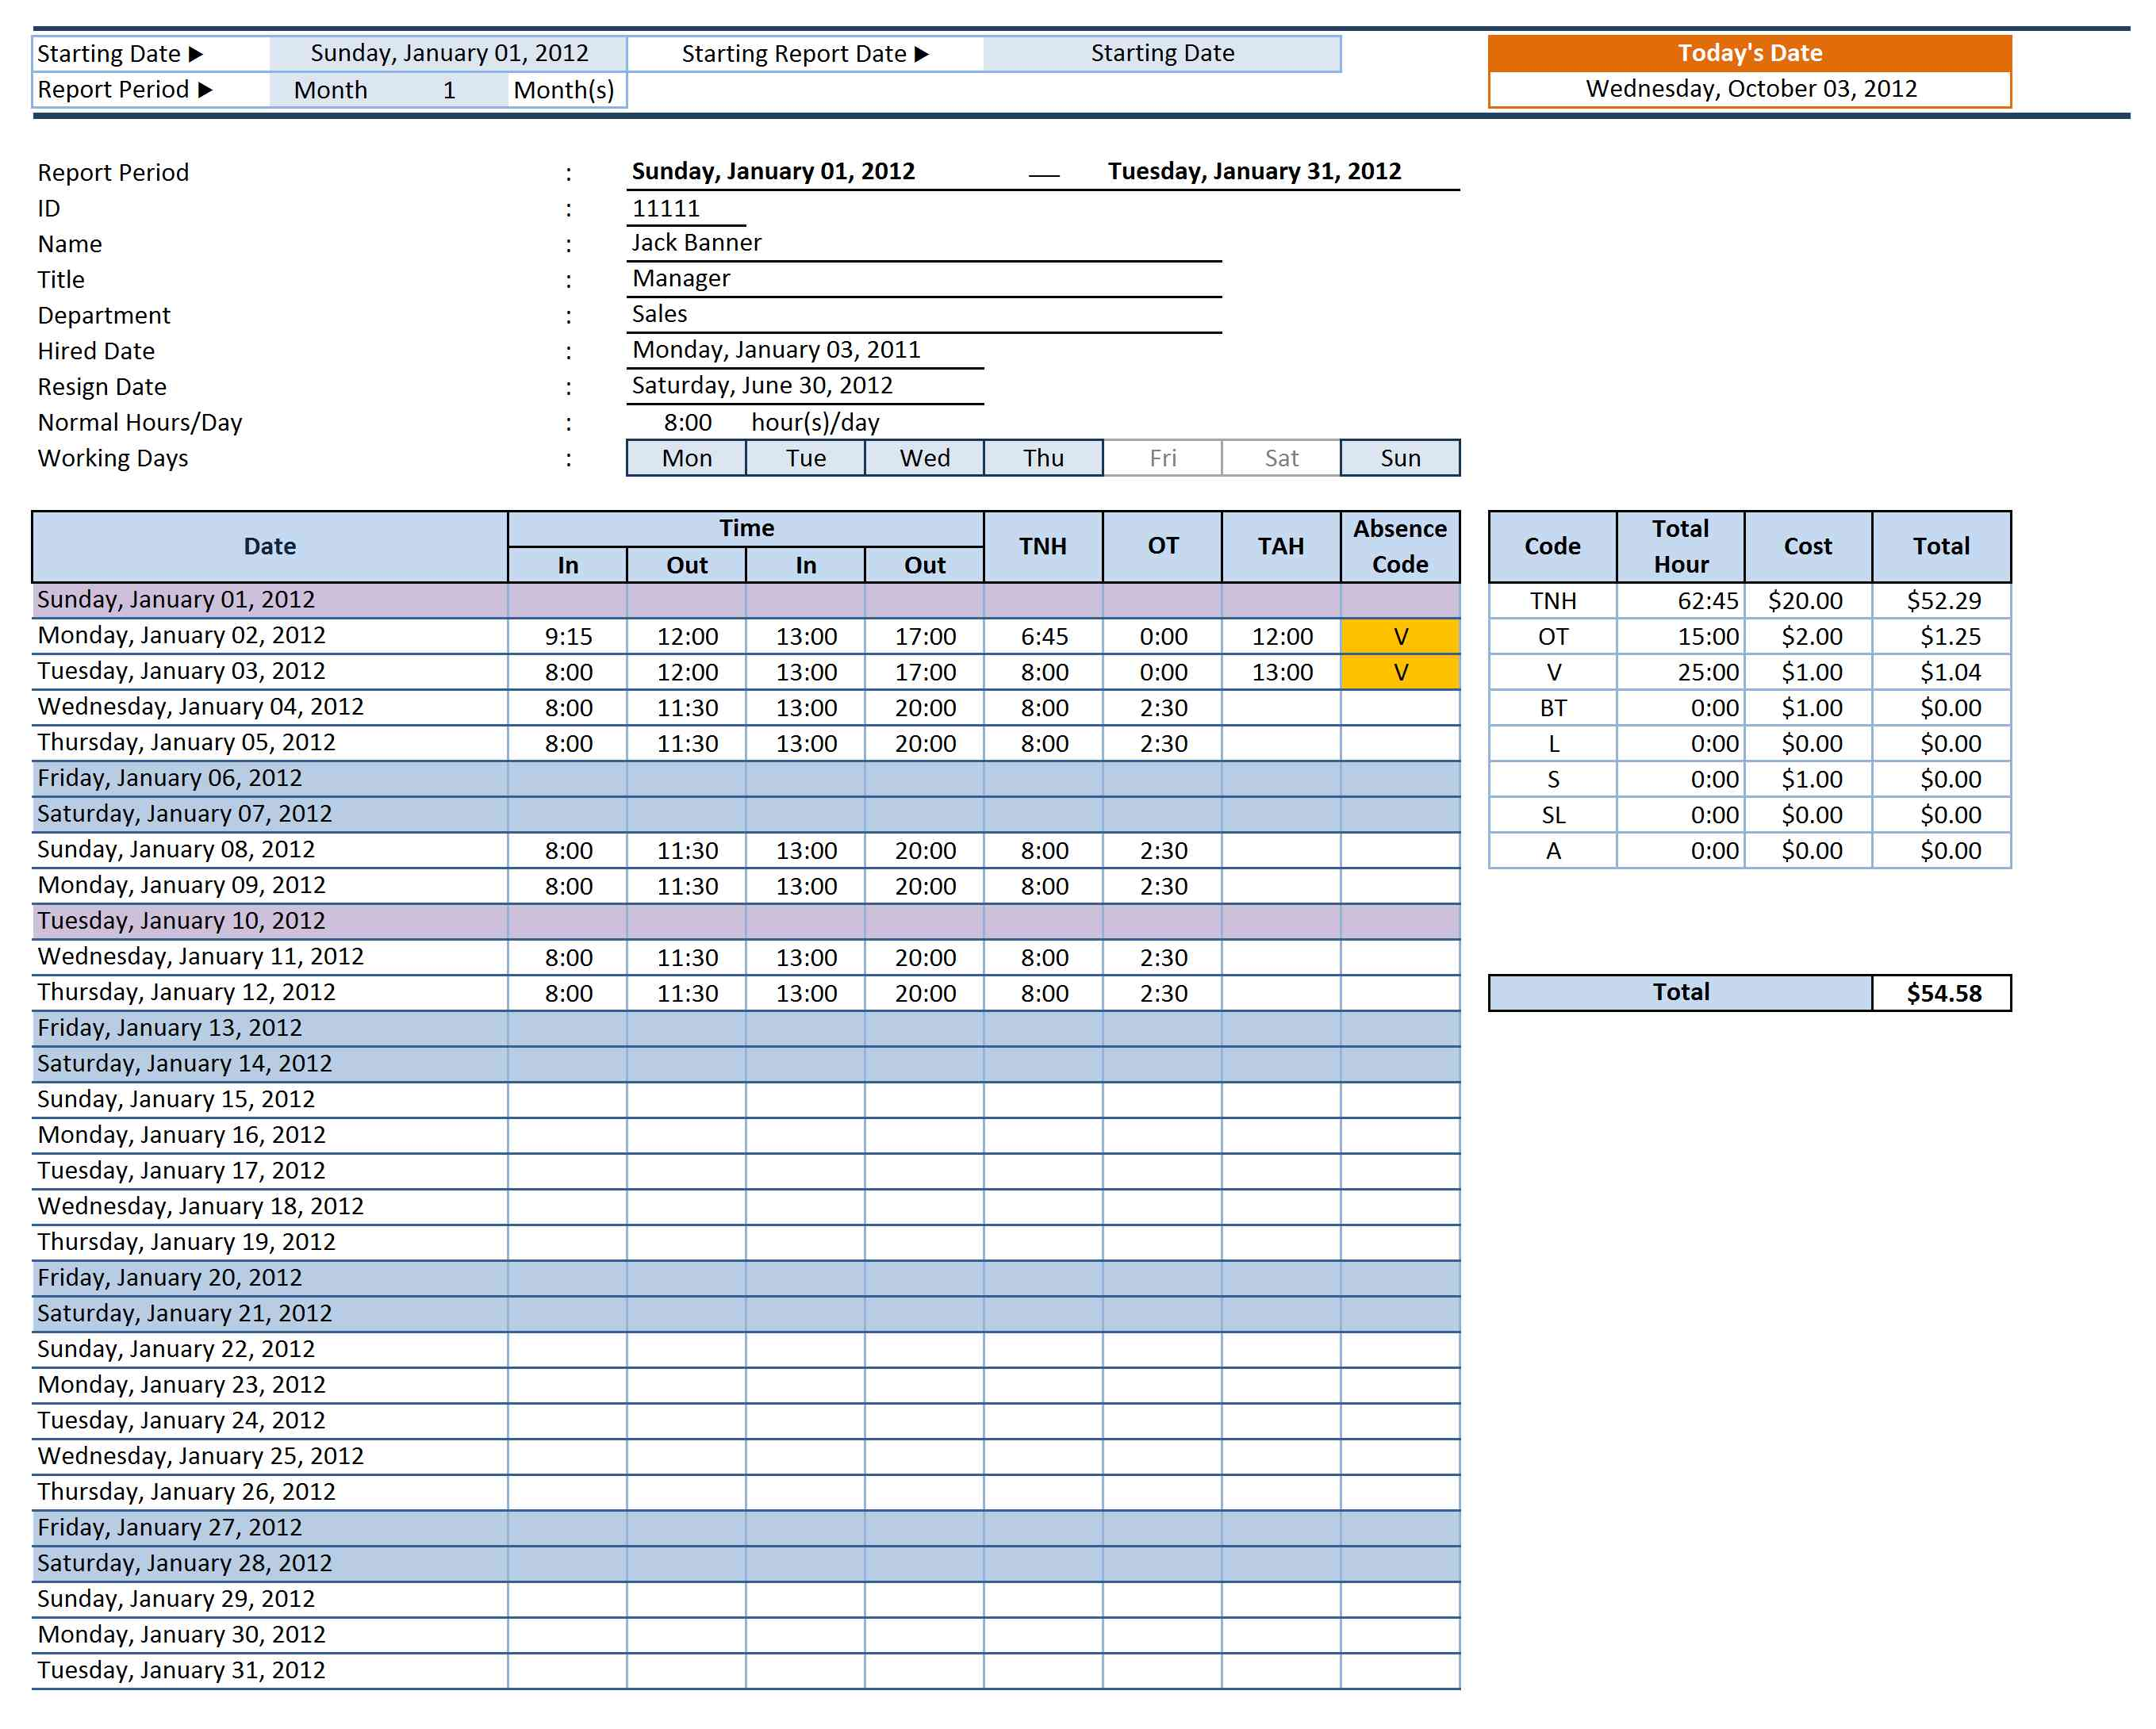 Employee productivity report template excel | argacorp.